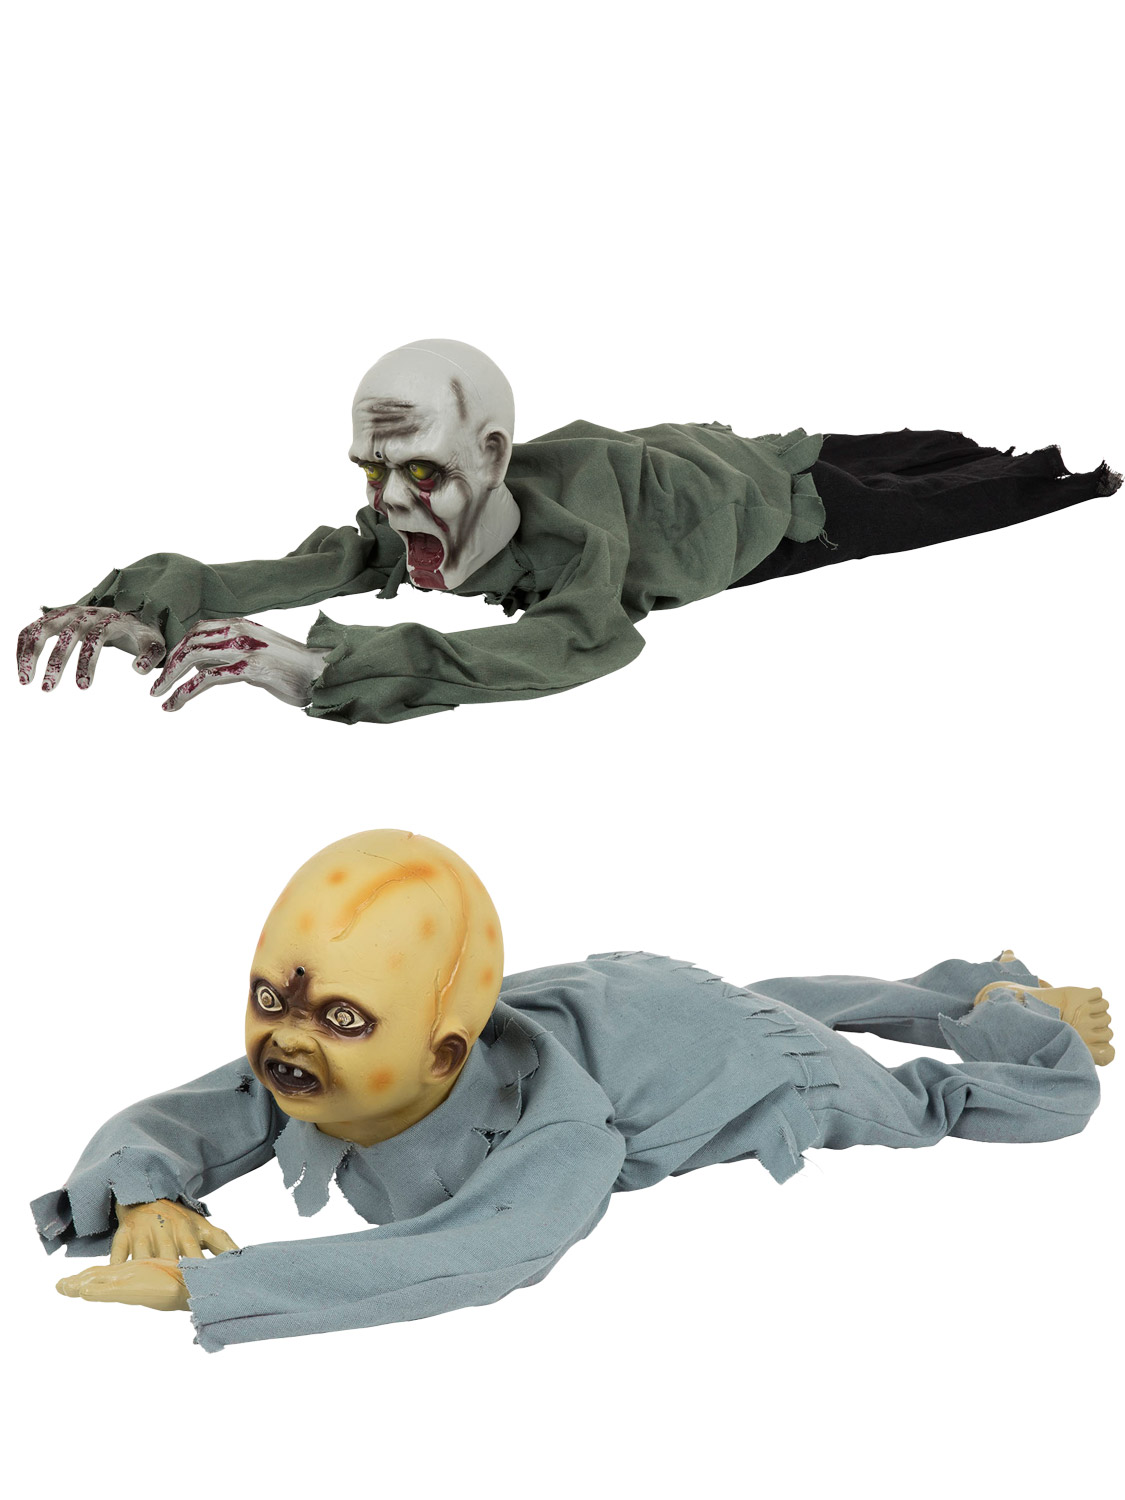 Halloween Zombie Baby Prop.Details About Animated Crawling Zombie Baby Prop Halloween Horror Party Decoration Fancy Dress